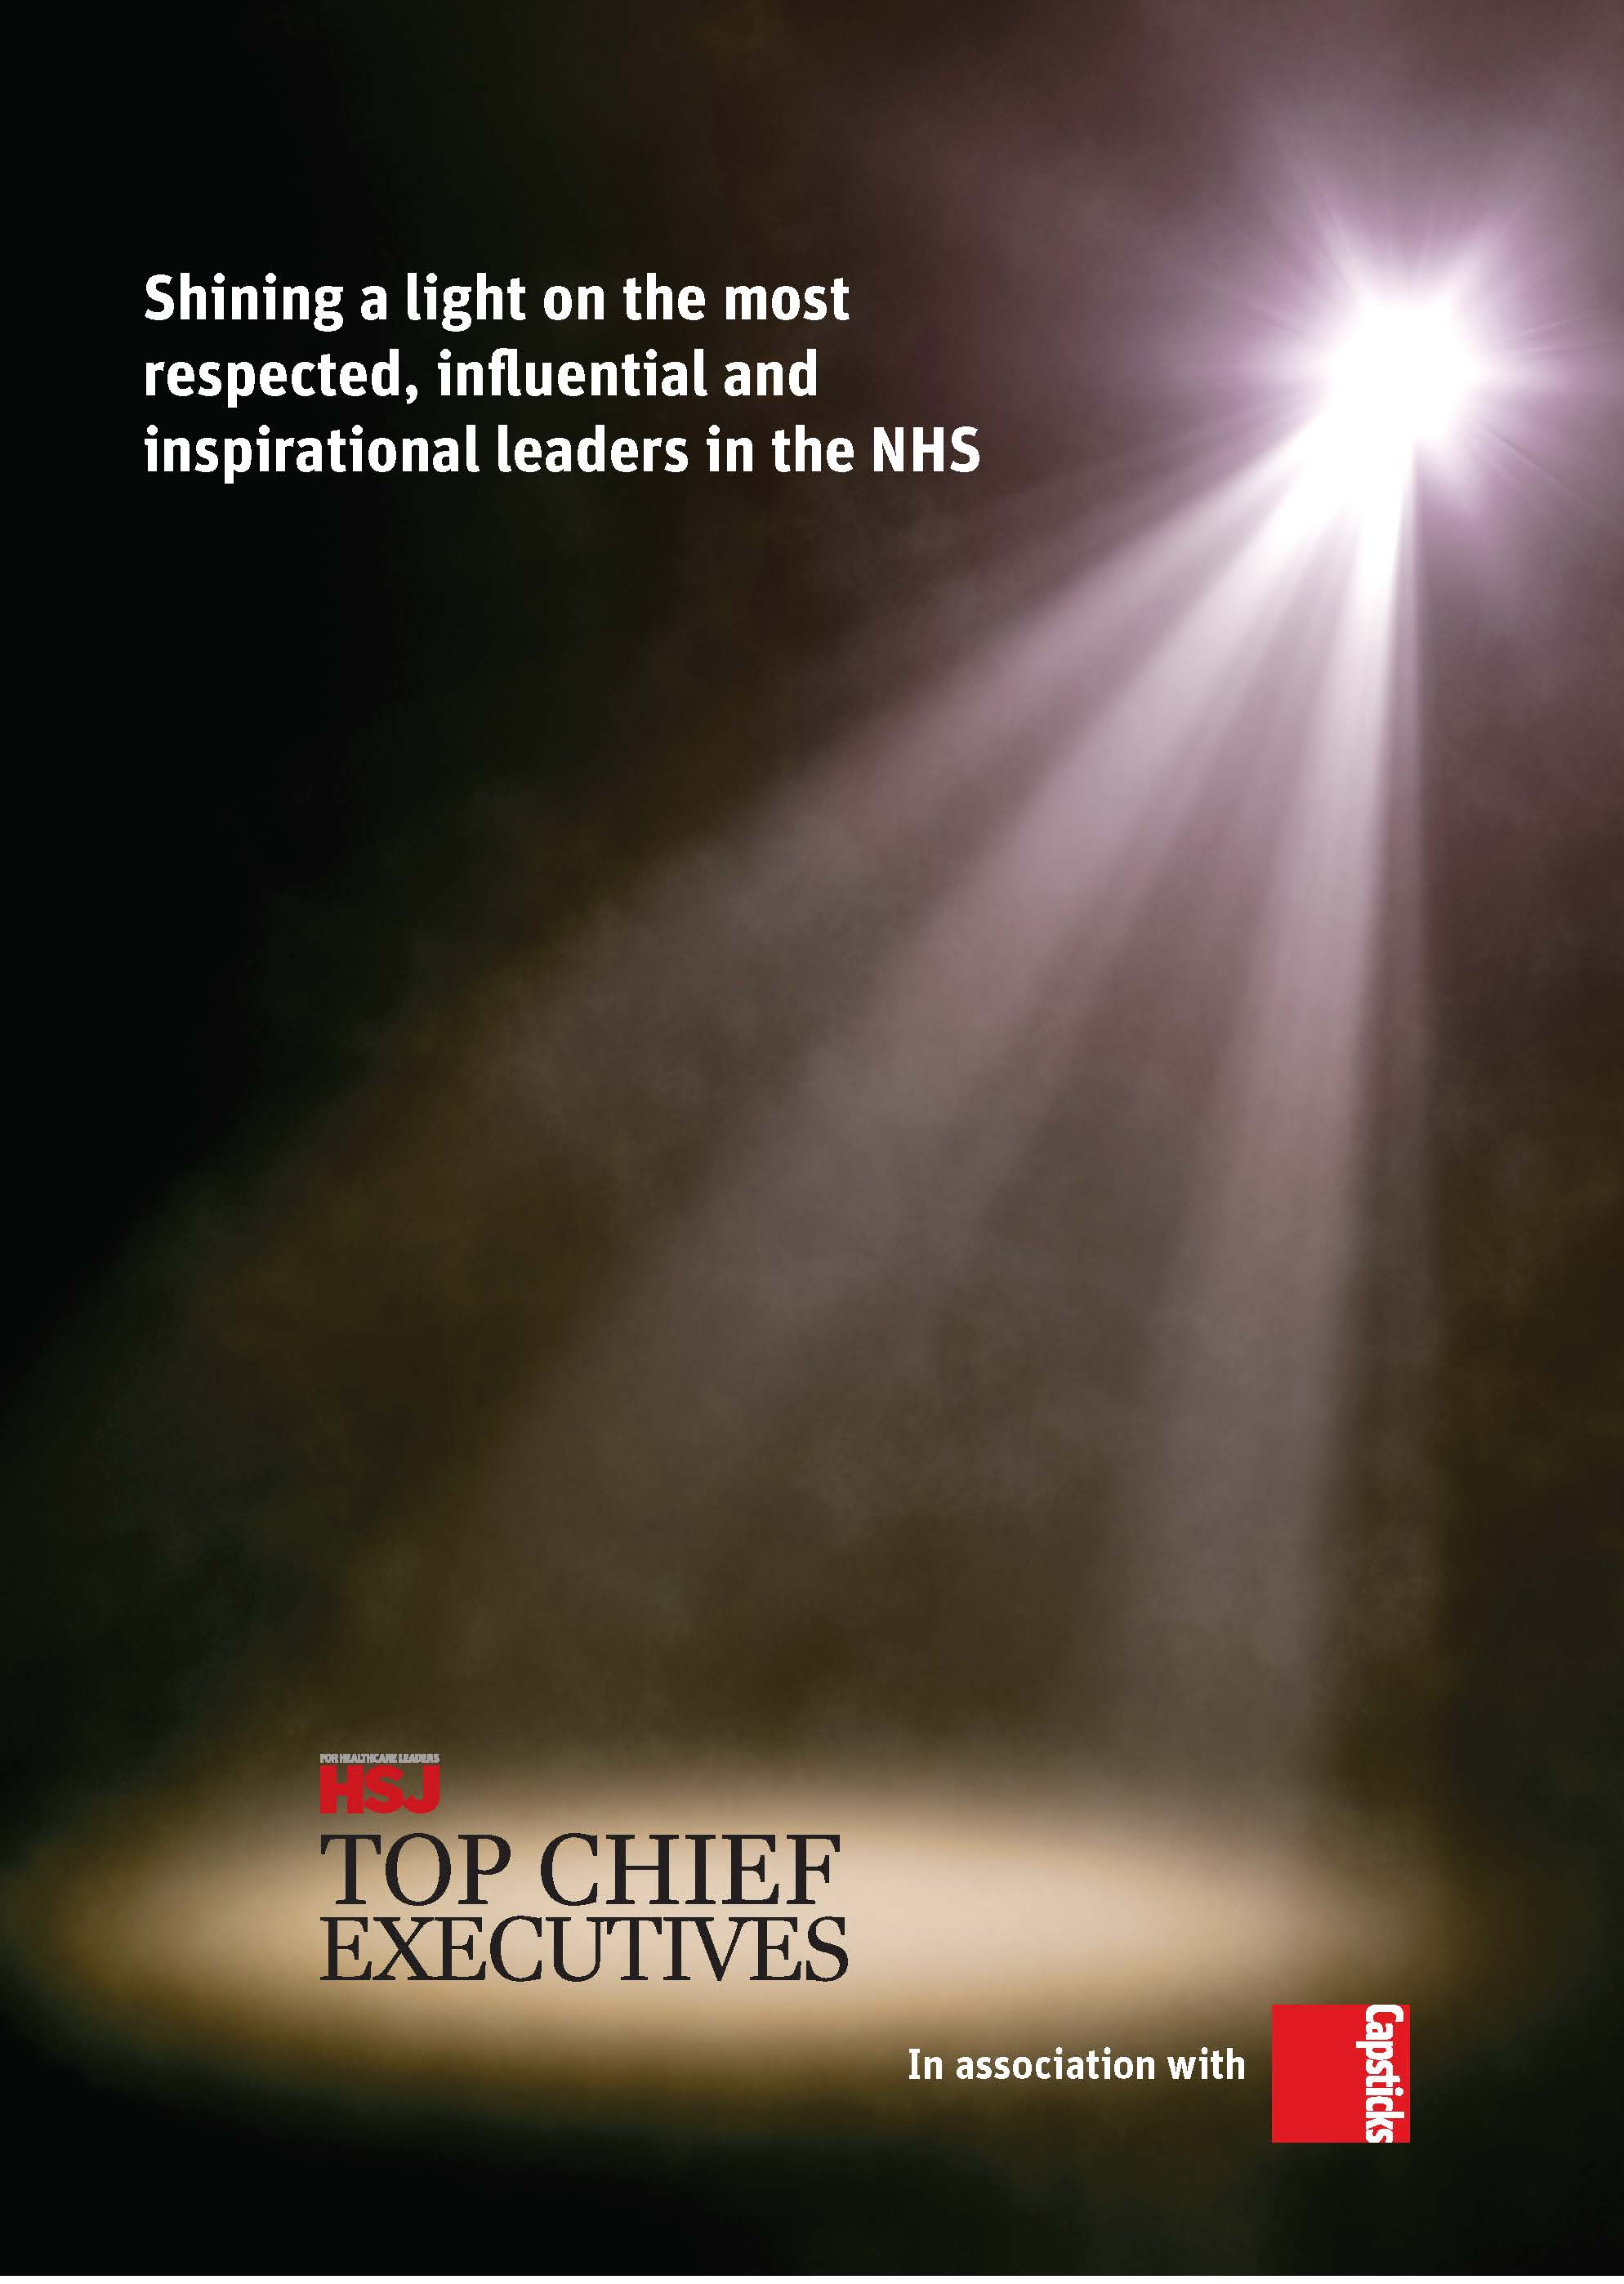 Top chief execs 9 march 2016